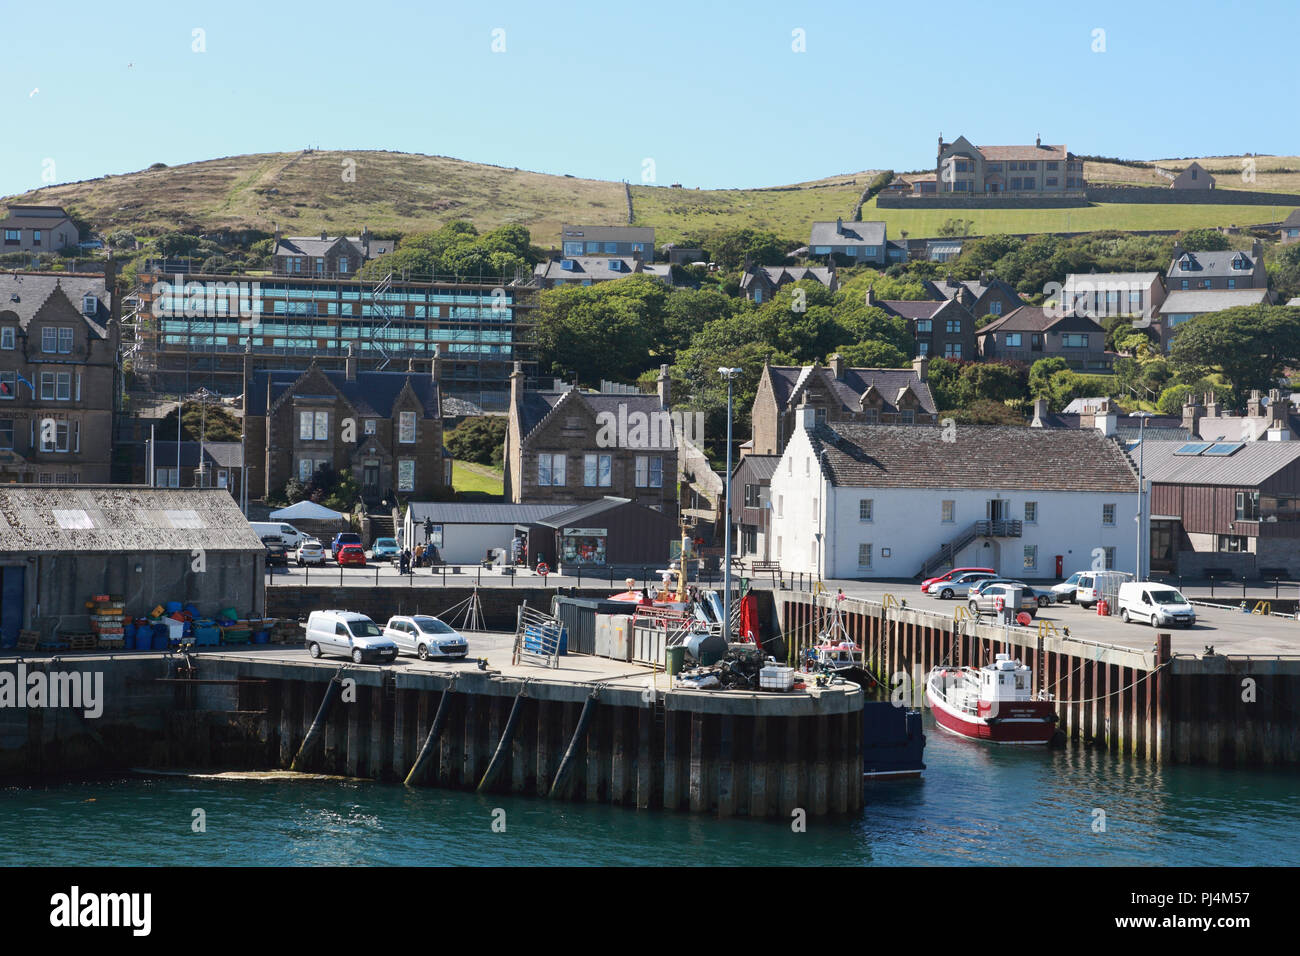 Part of the harbour and town of Stromness in the Orkney Islands - Stock Image